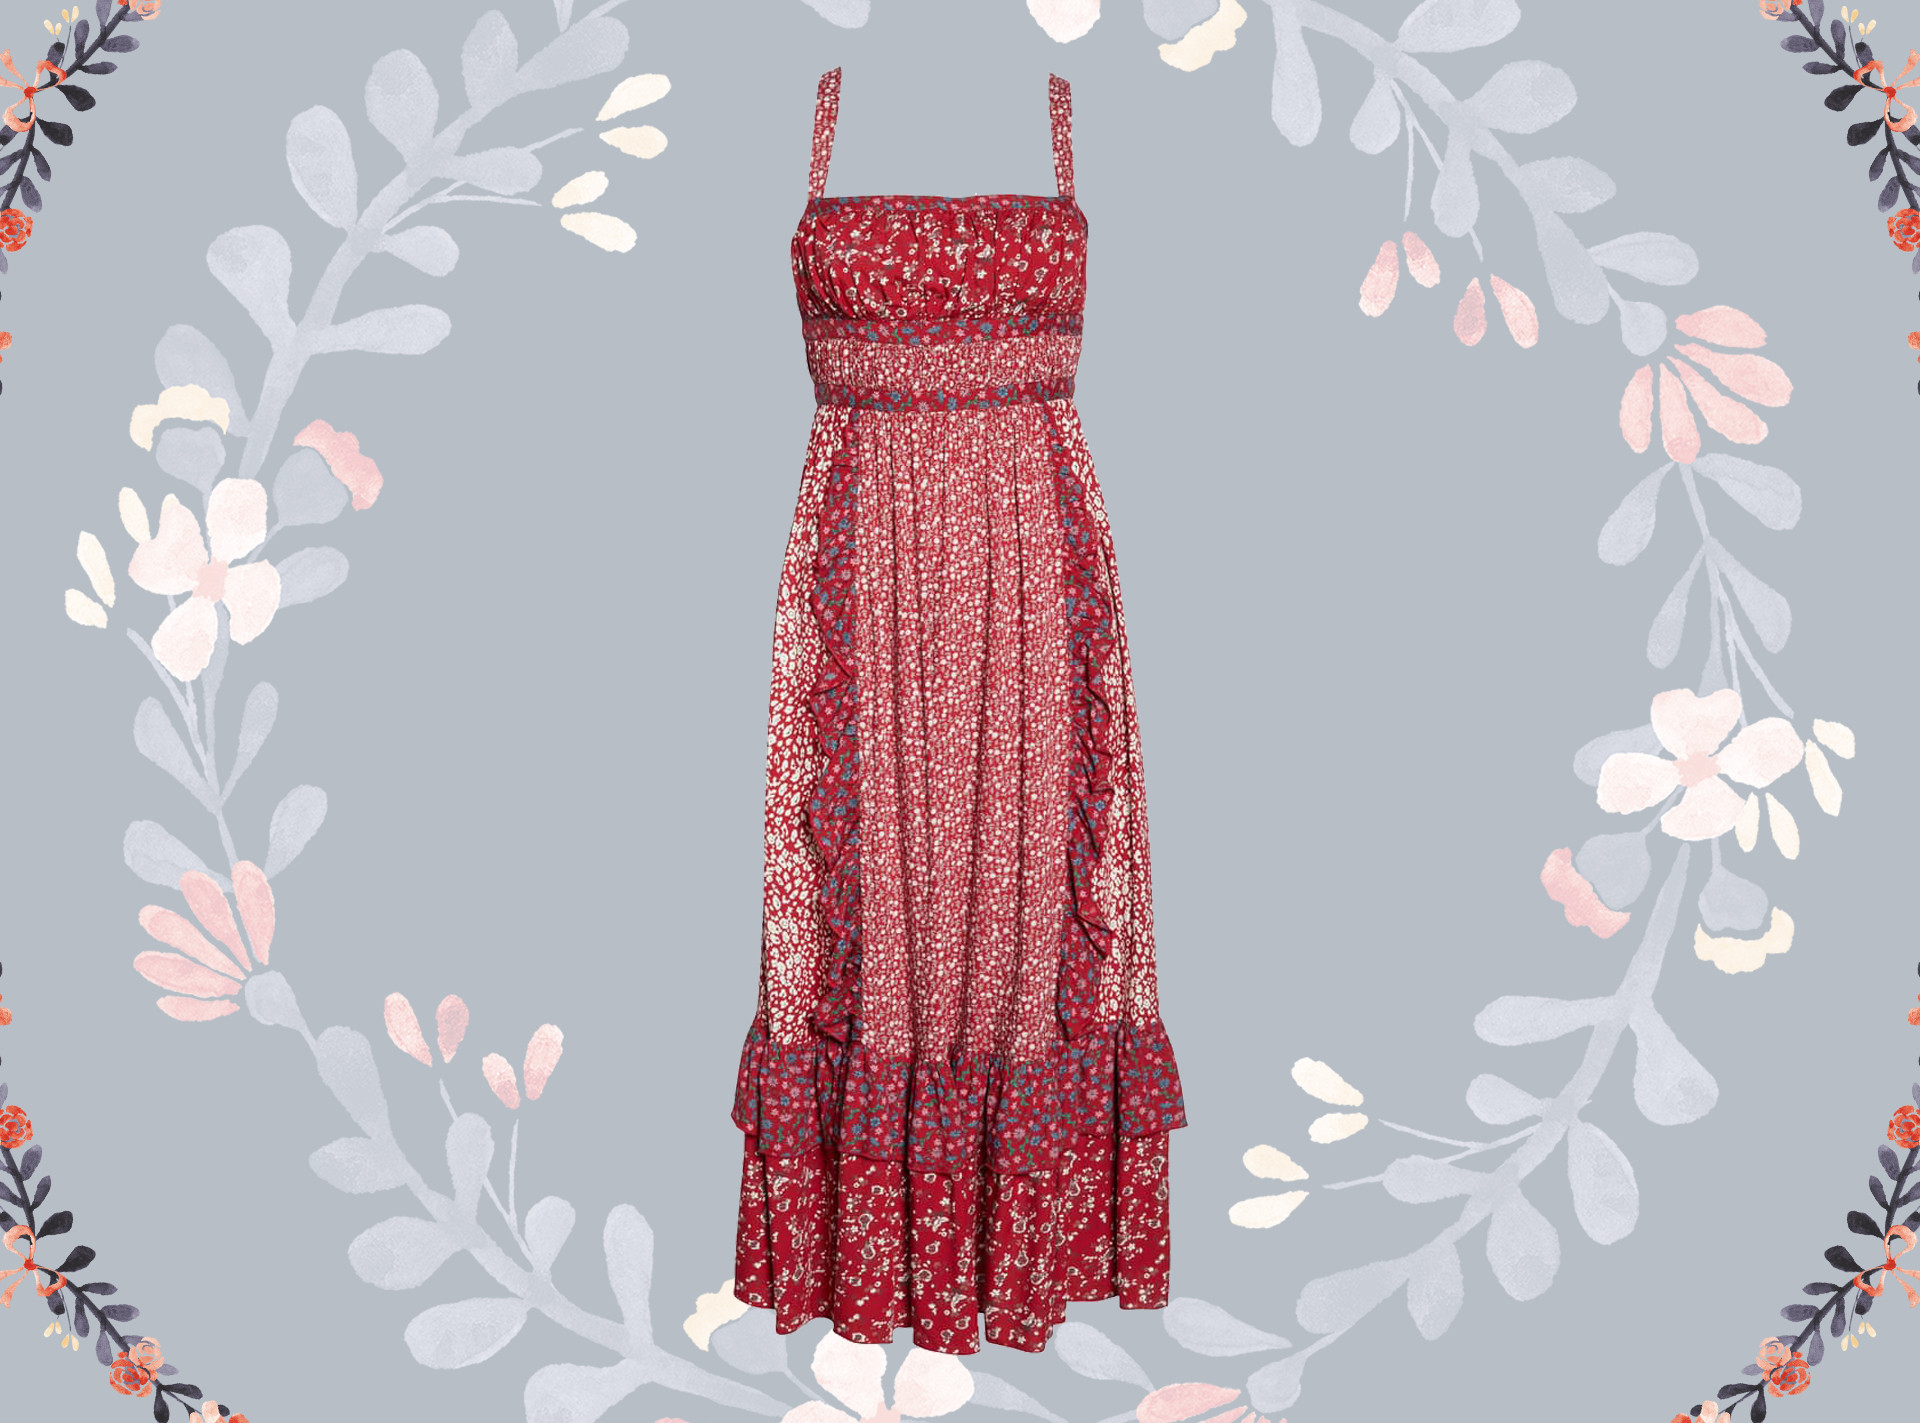 Boho Dresses on Sale Now—Just in Time for Coachella | E ...